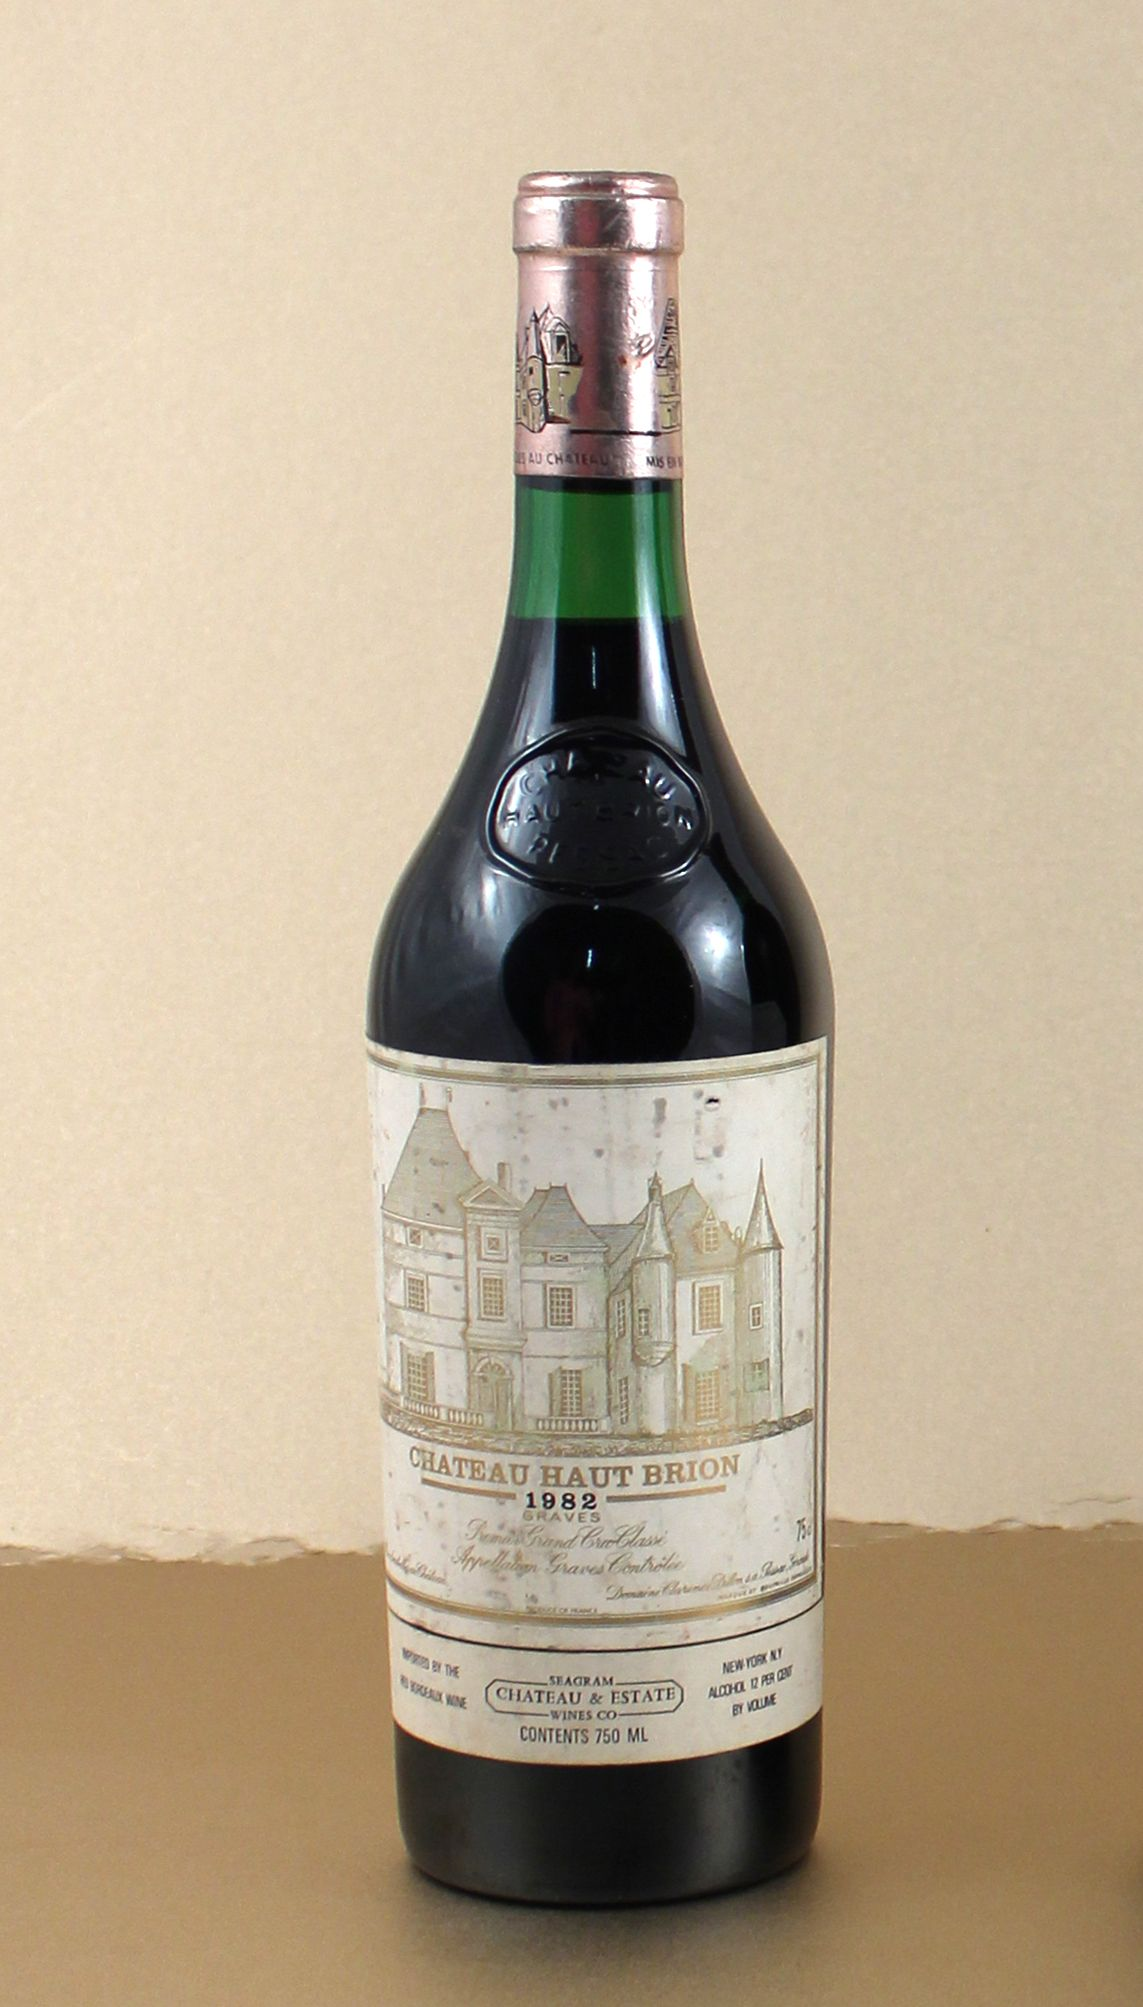 Lot 2 1 X Chateau Haut Brion 1982 750ml France Wine Wine And